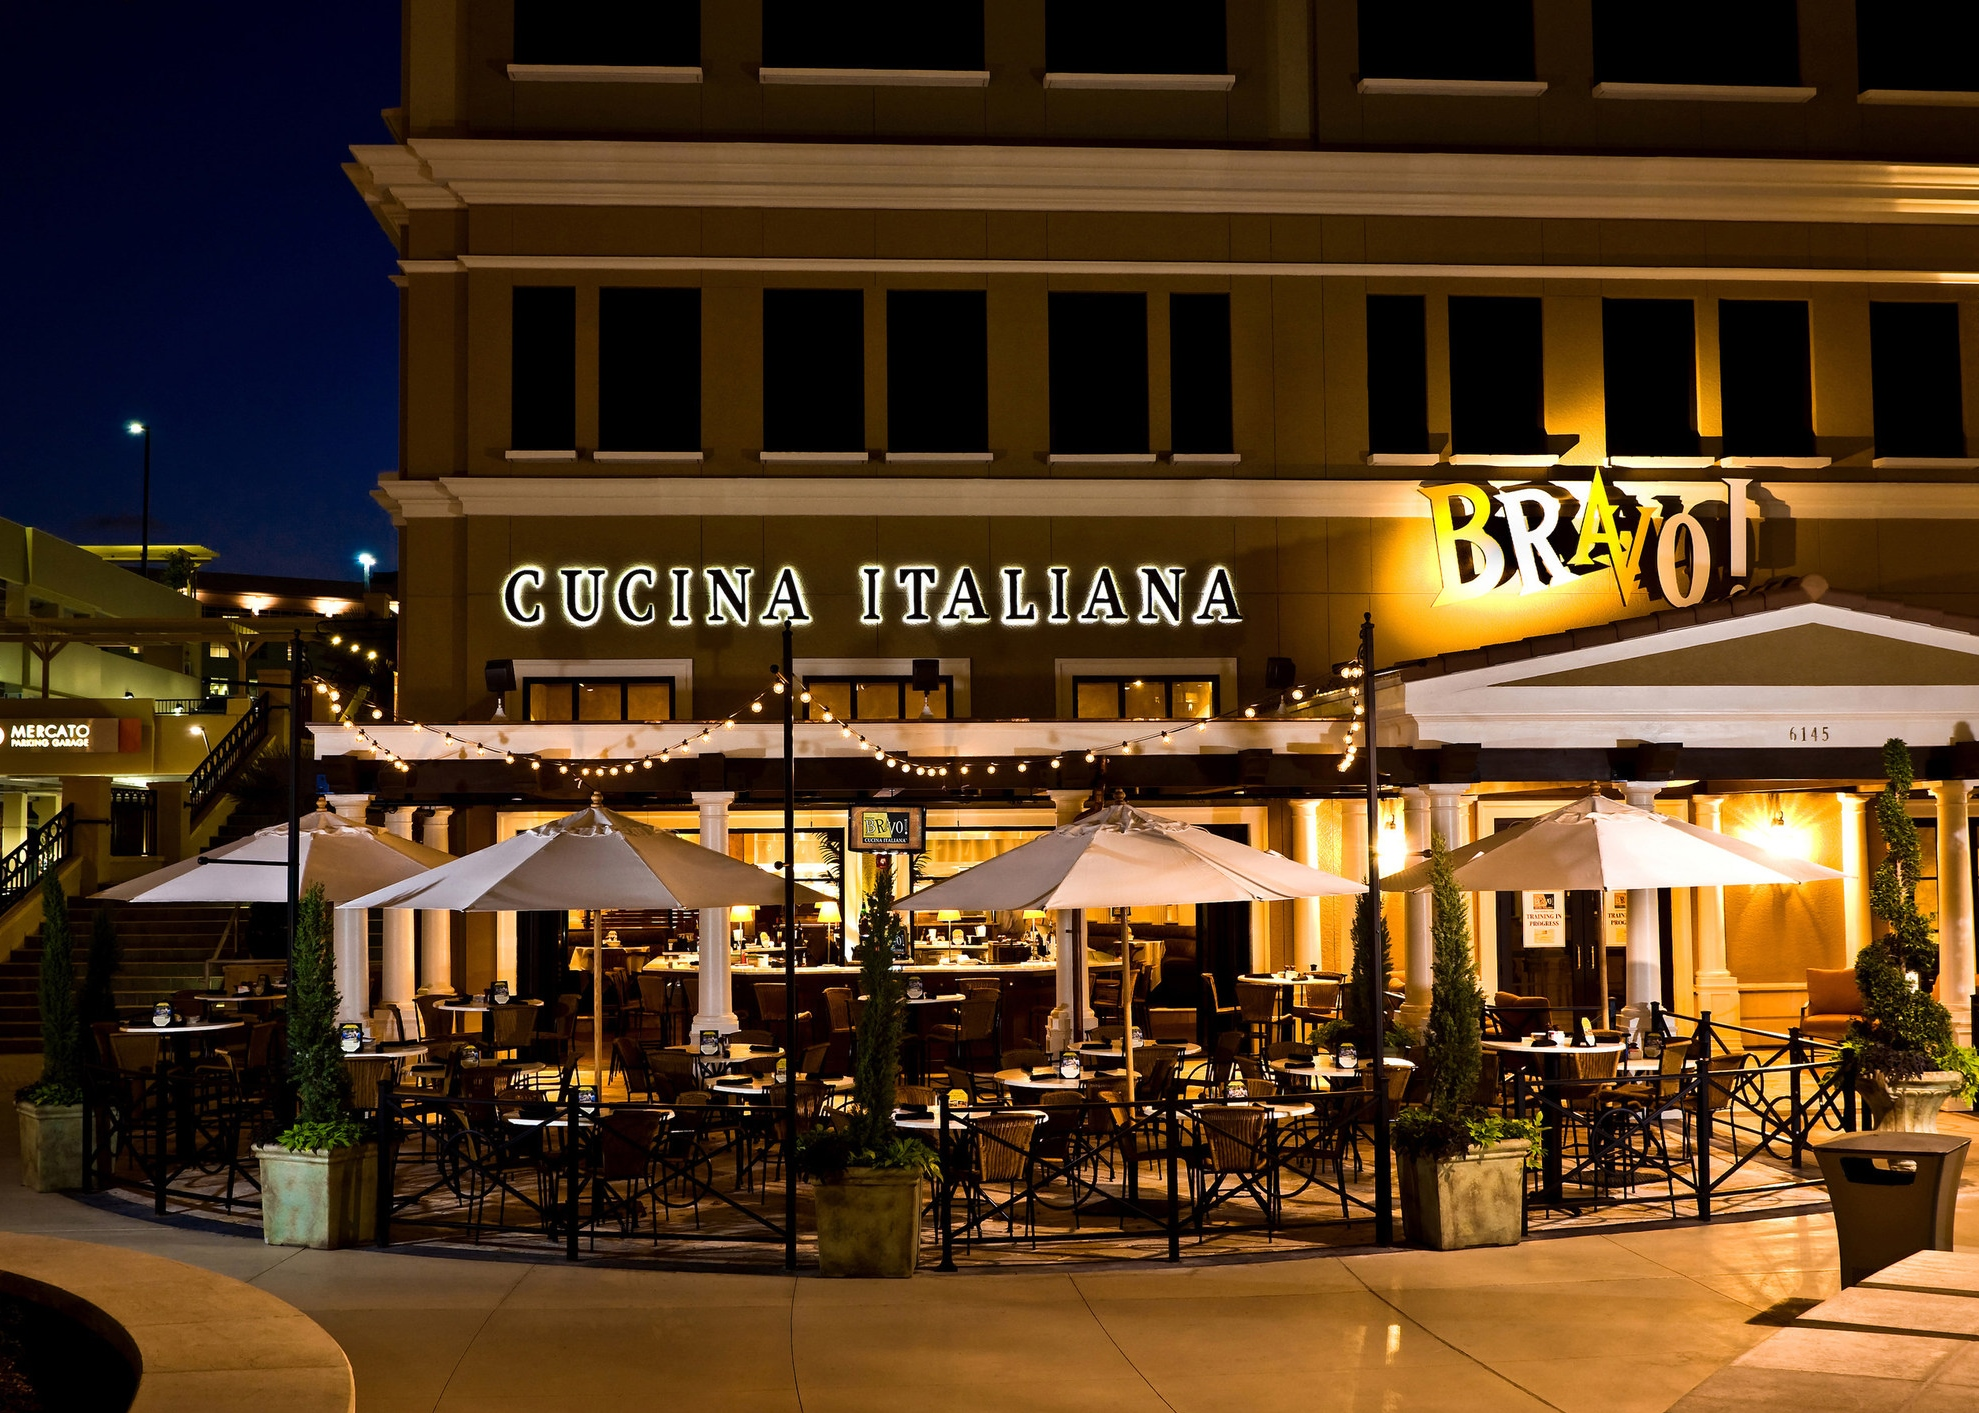 We The Italians Bravo Cucina Italiana At Mercato In Naples Florida Recently Named One Of Opentable S Top 100 Hot Spot Restaurants America